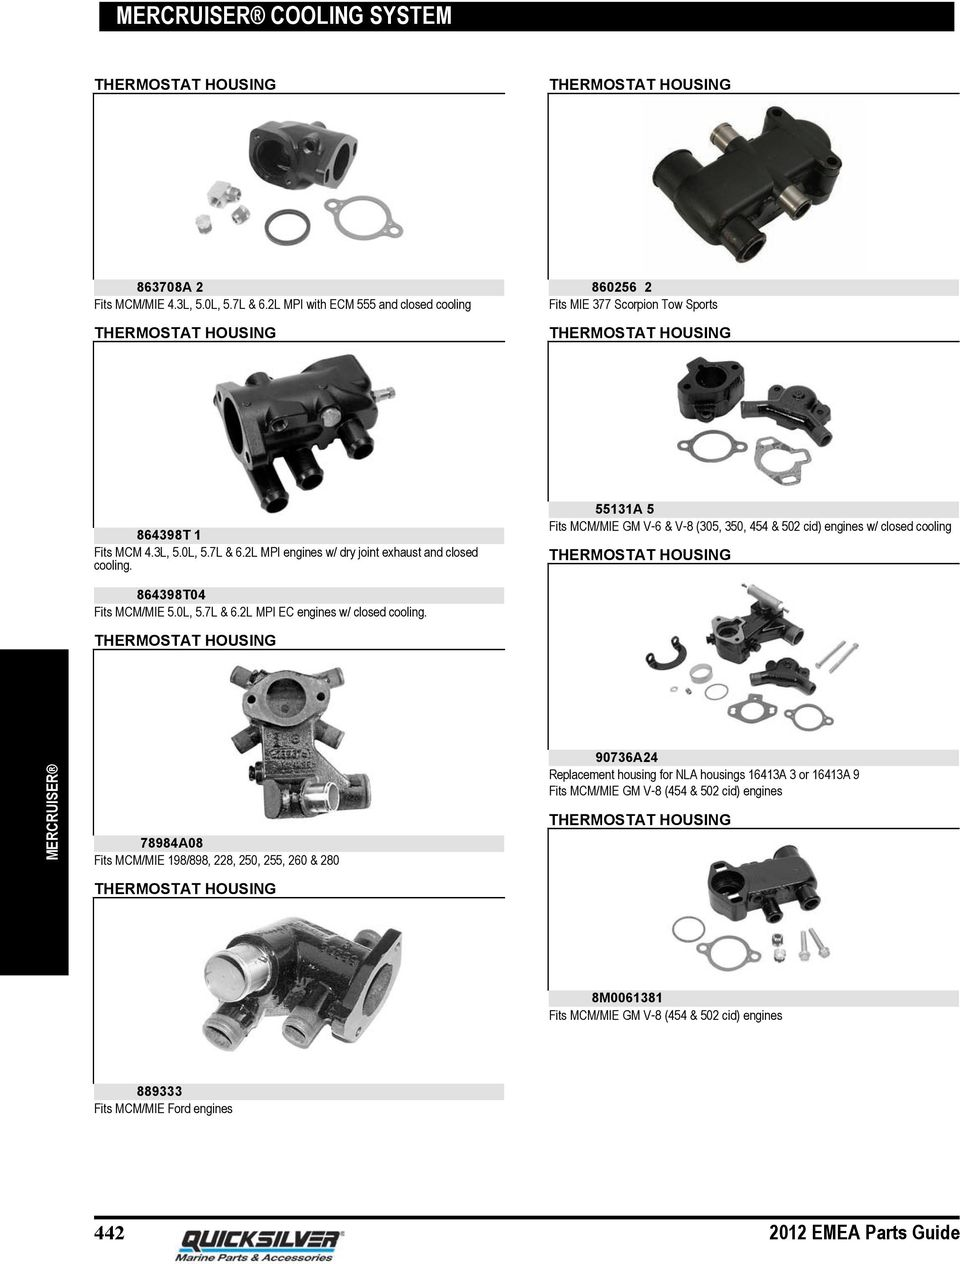 medium resolution of 2l mpi engines w dry joint exhaust and closed cooling 55131a 5 fits mcm